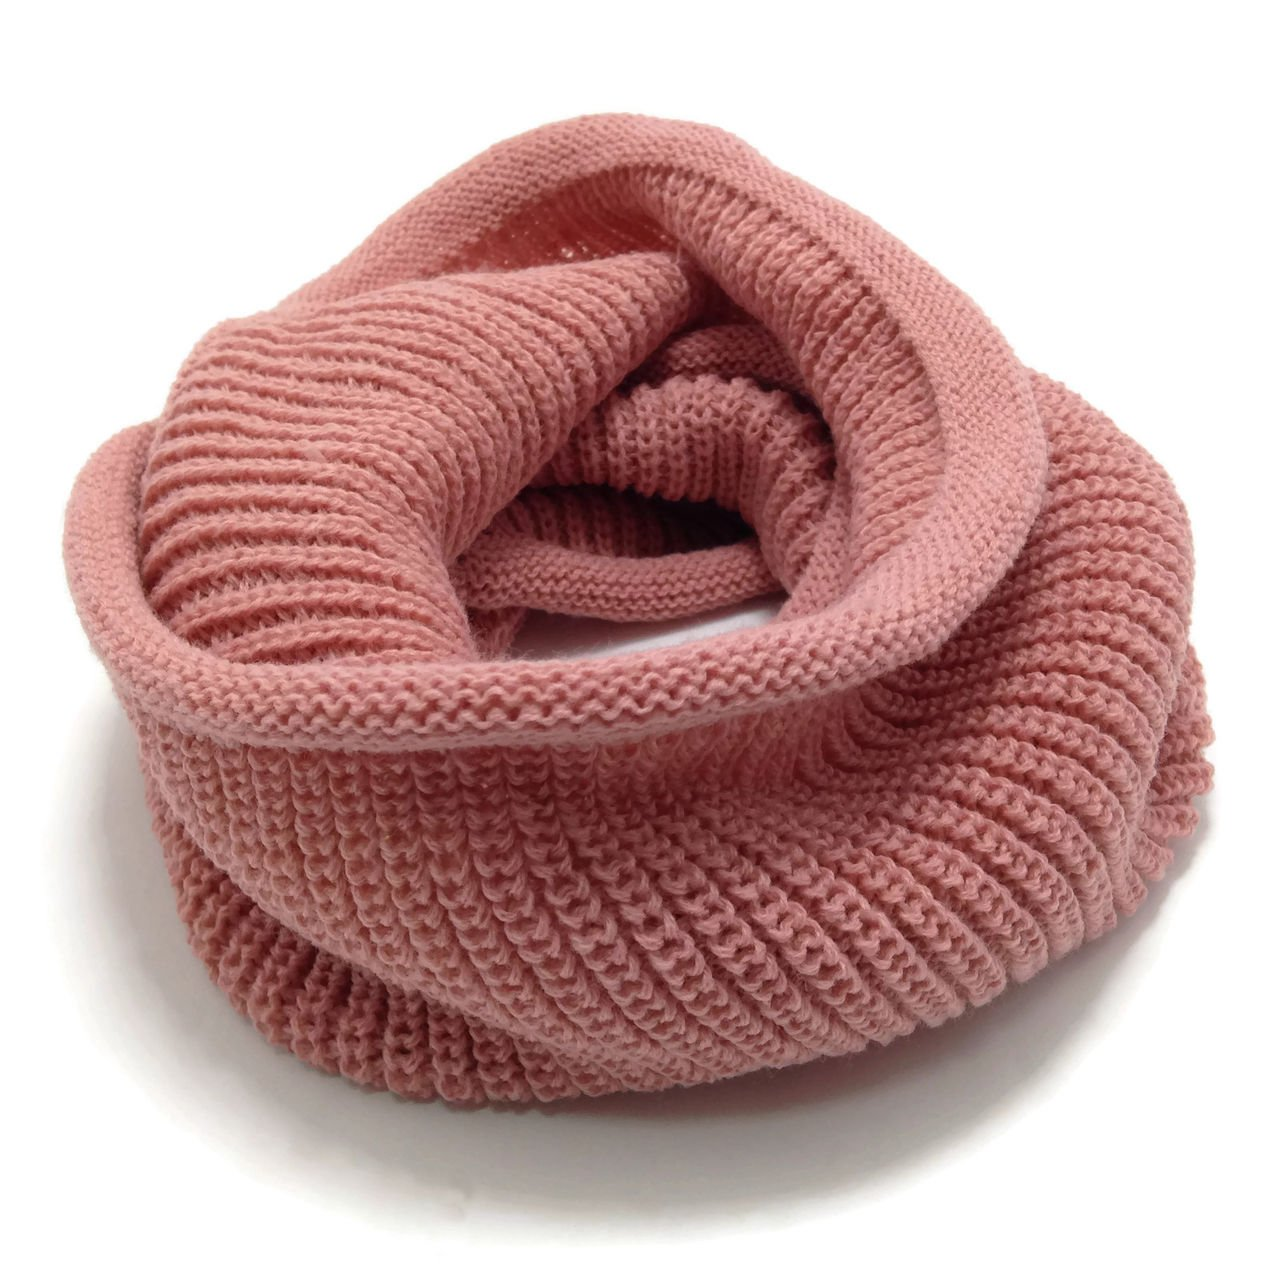 HappyTree Kids Hot Fashion Thick Knitted Winter Warm Infinity Scarf Pink